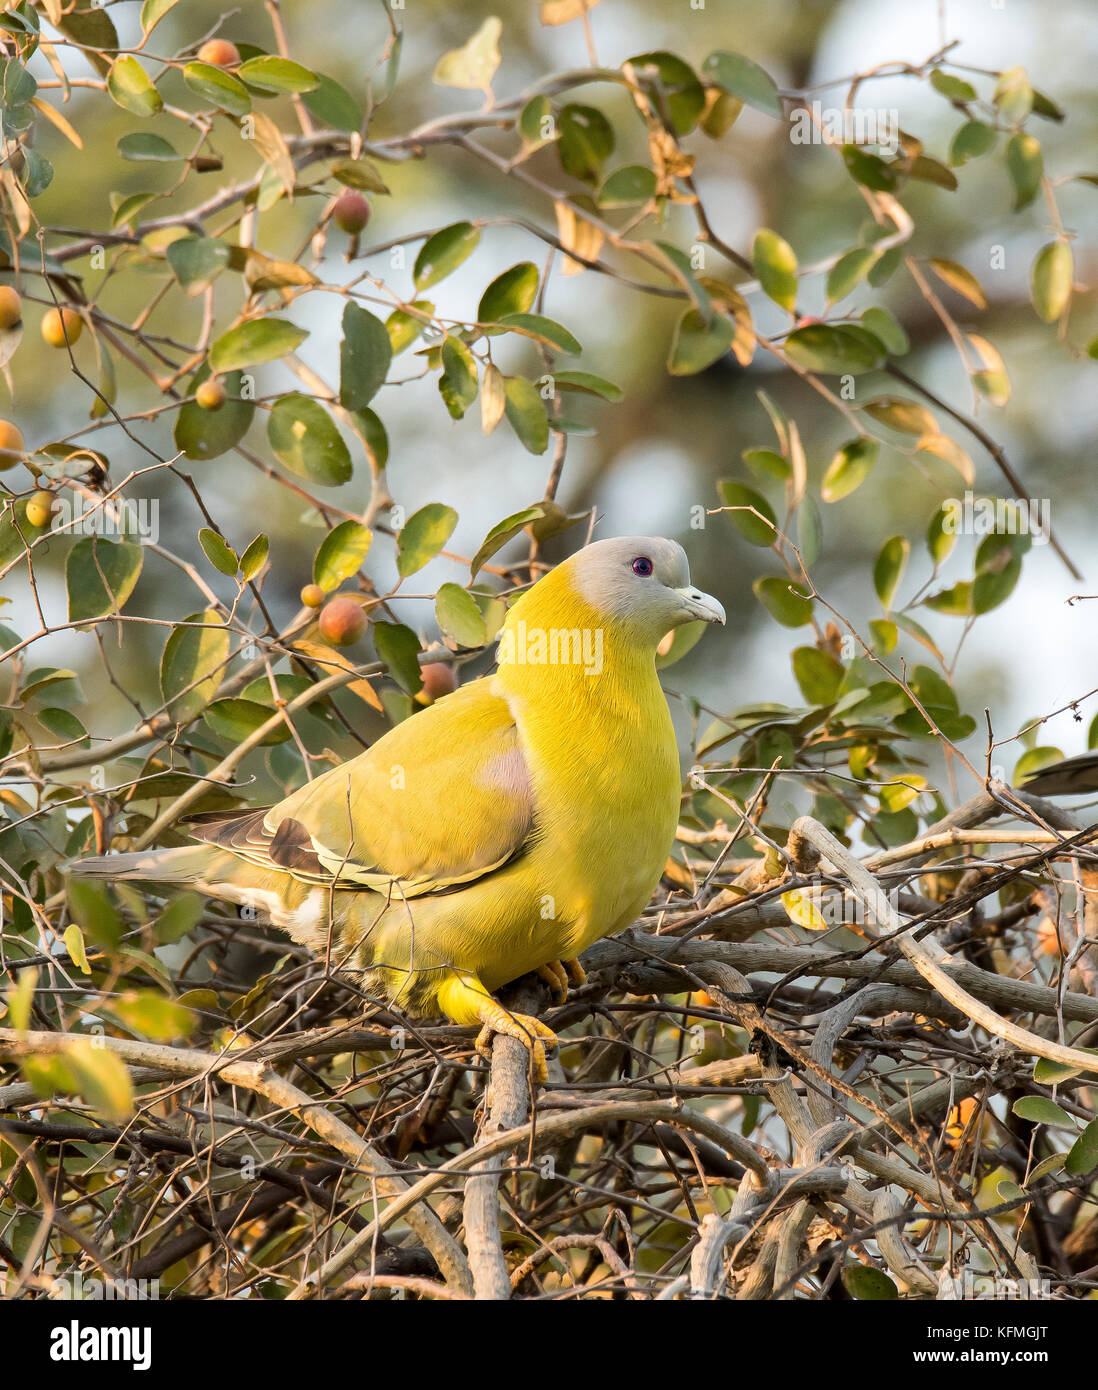 Yellow-footed green pigeon sitting on a high perch - Stock Image